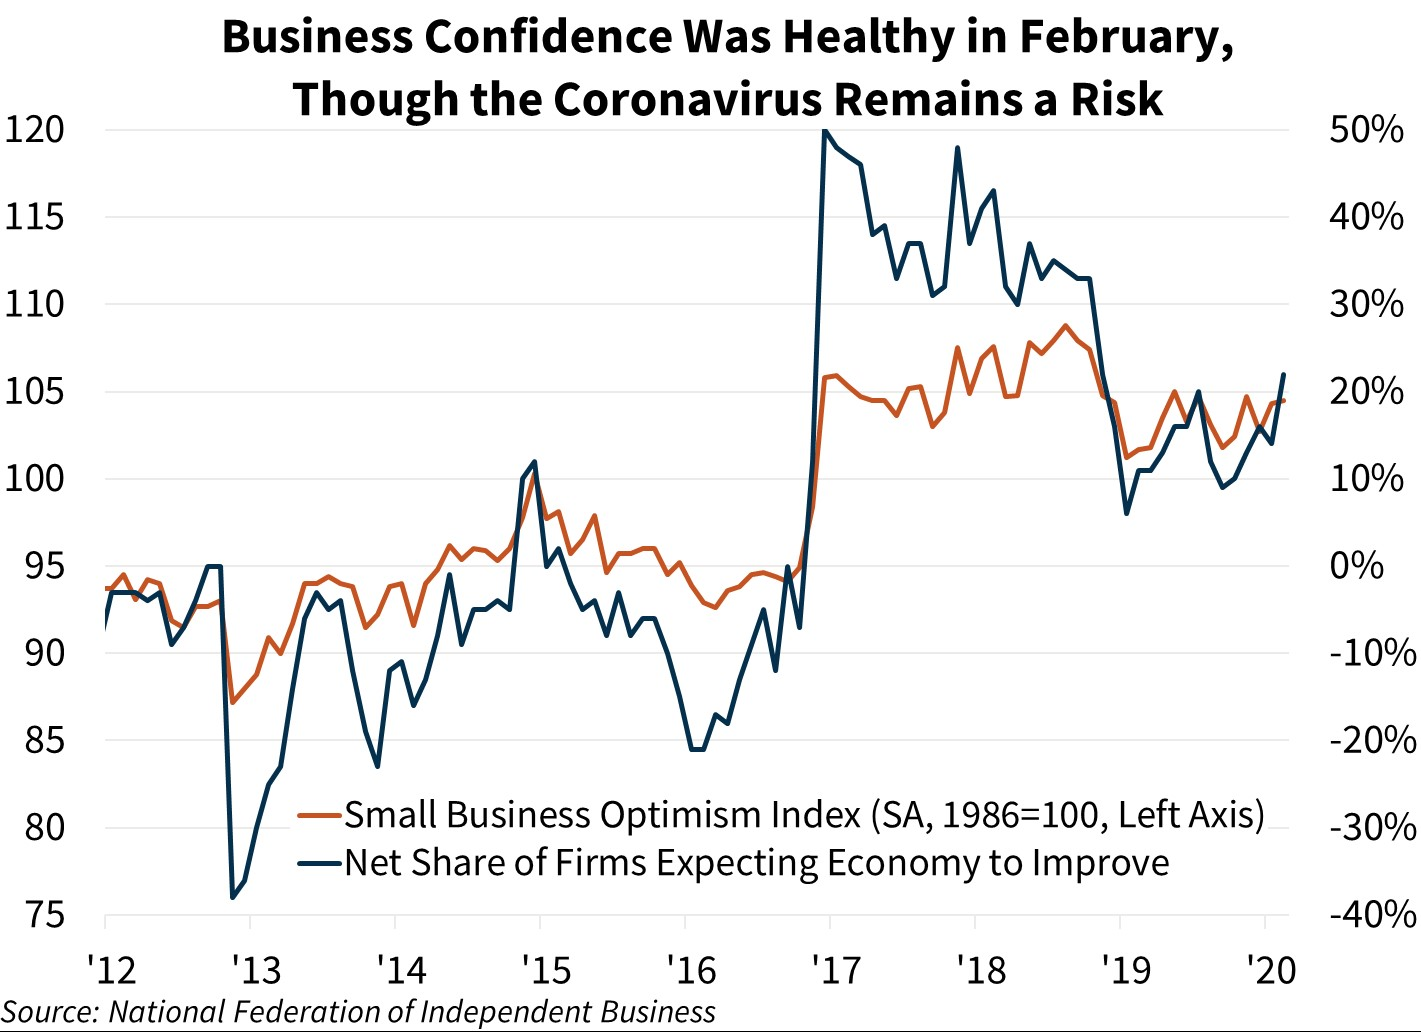 Business Confidence Was Healthy in February, Though The Coronavirus Remains a Risk